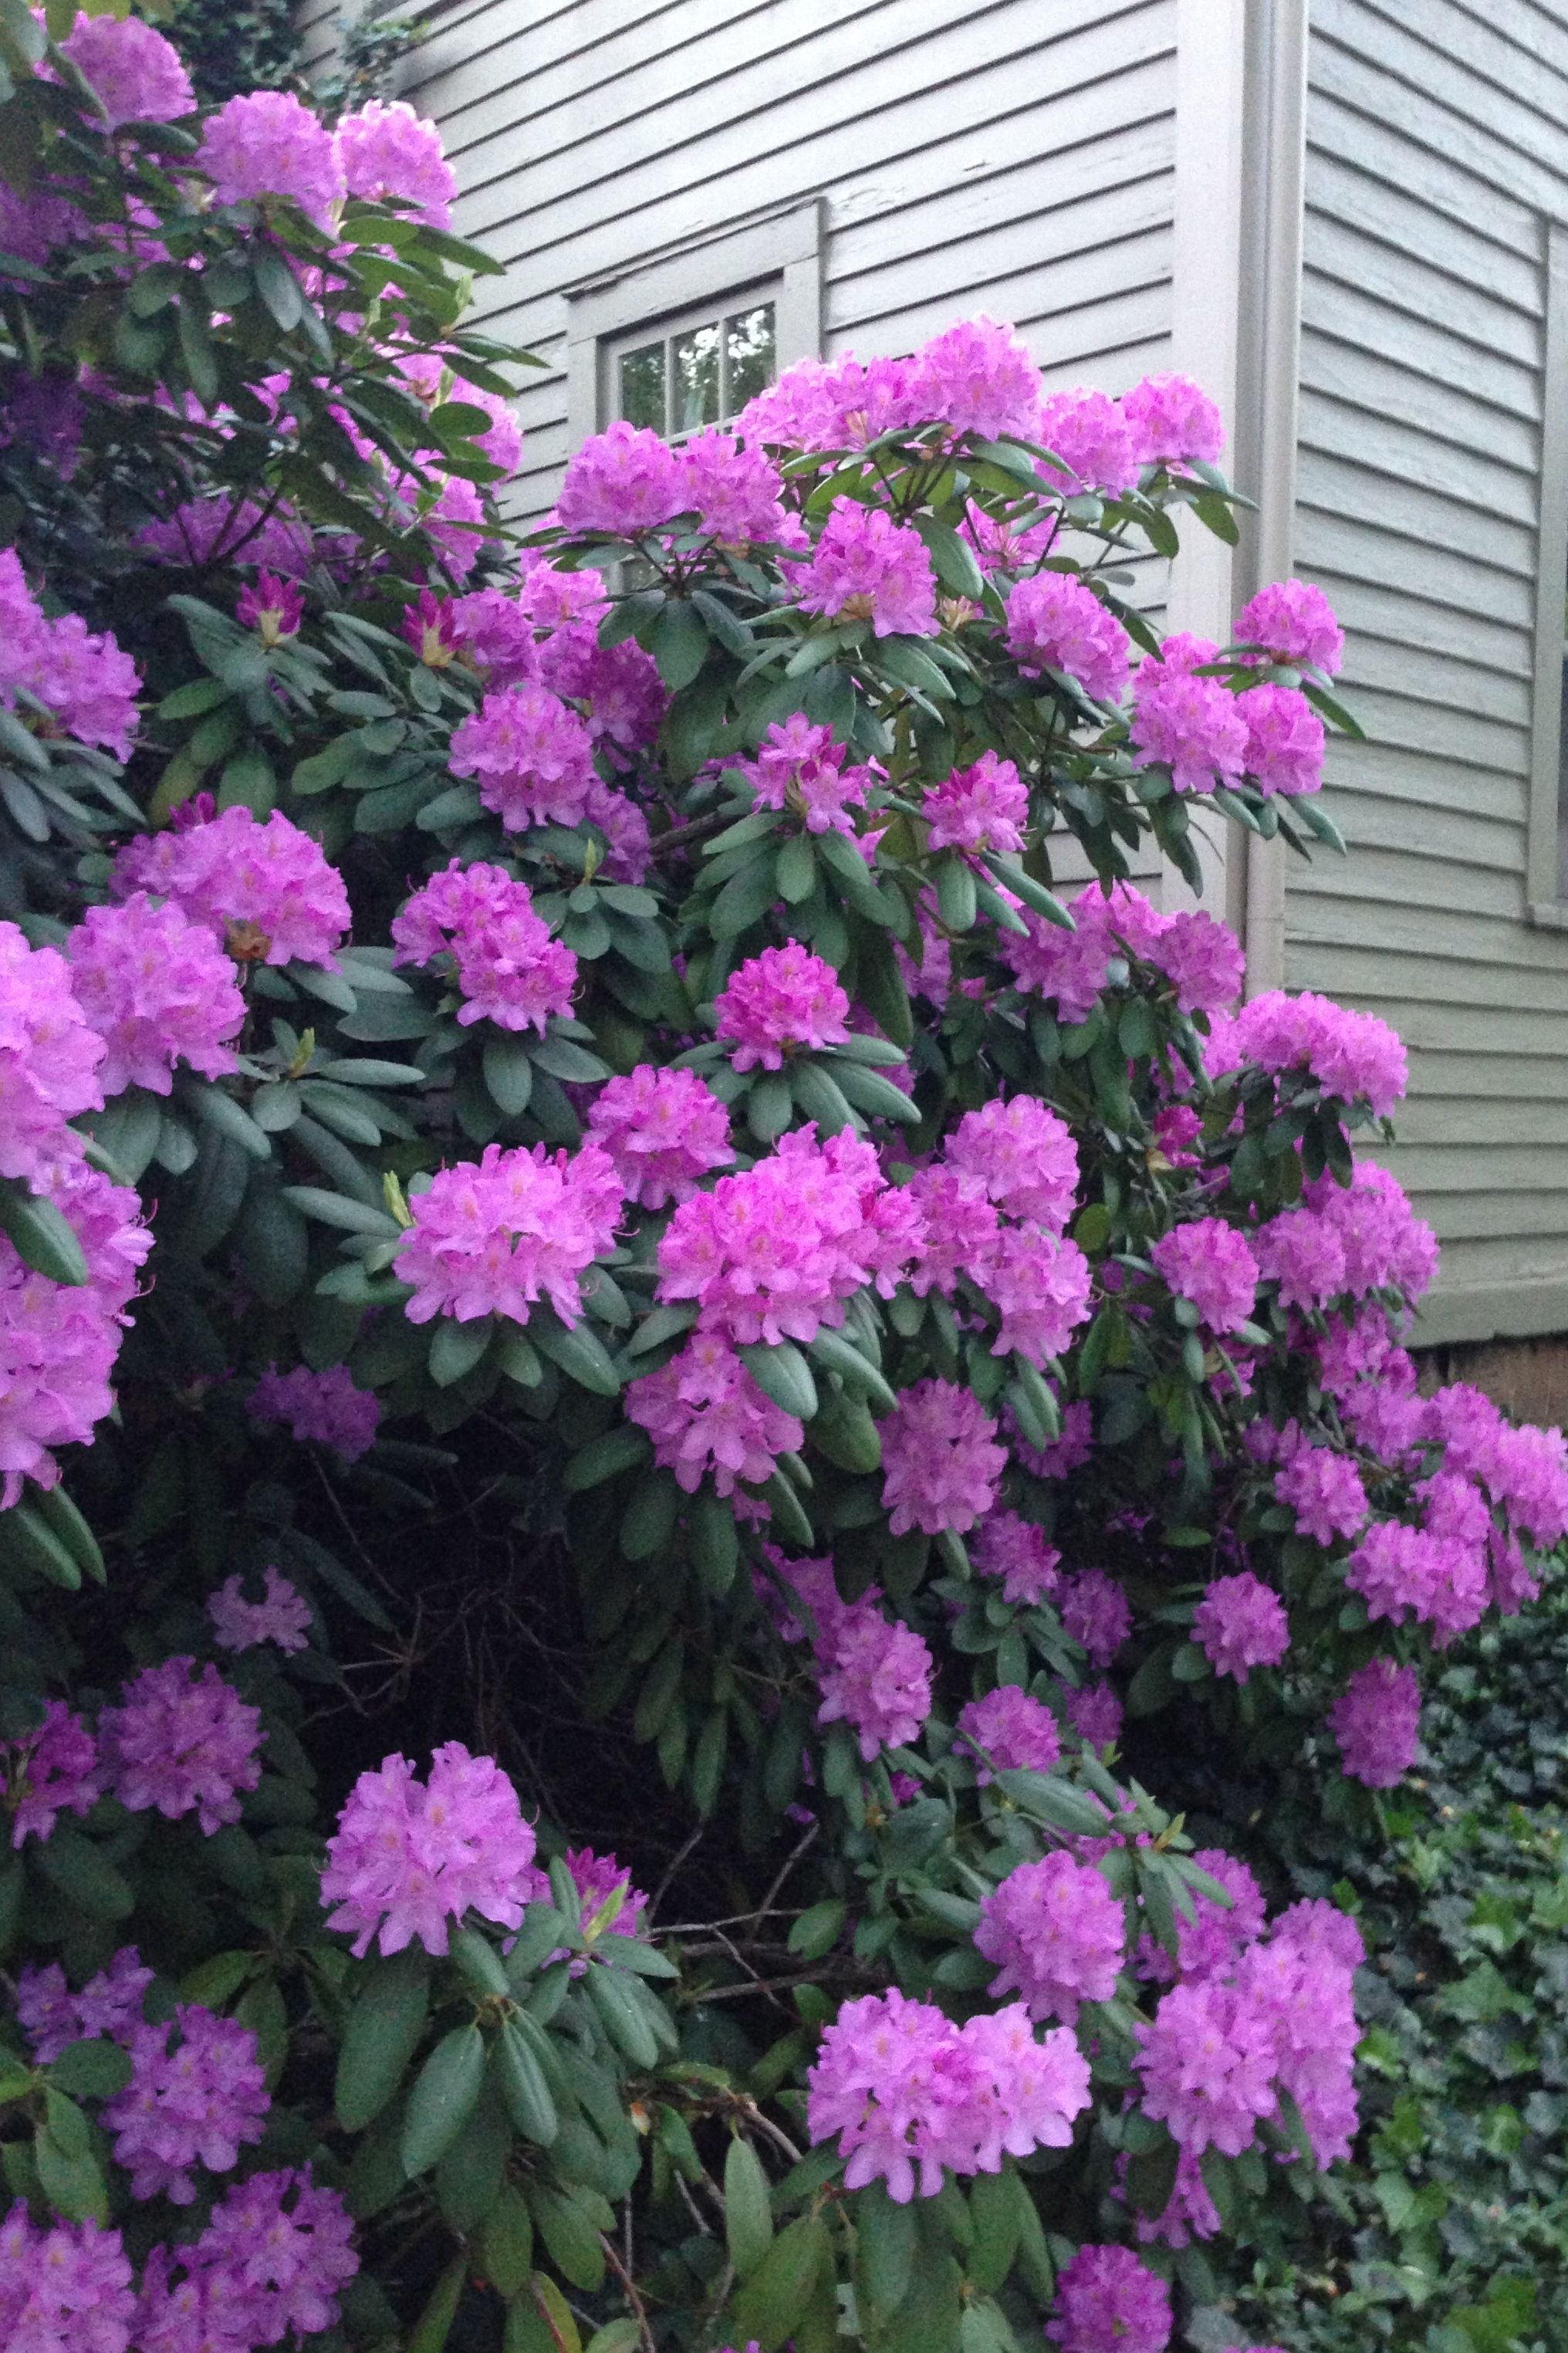 rhododendron just purchased 4 of these at a nursery plant